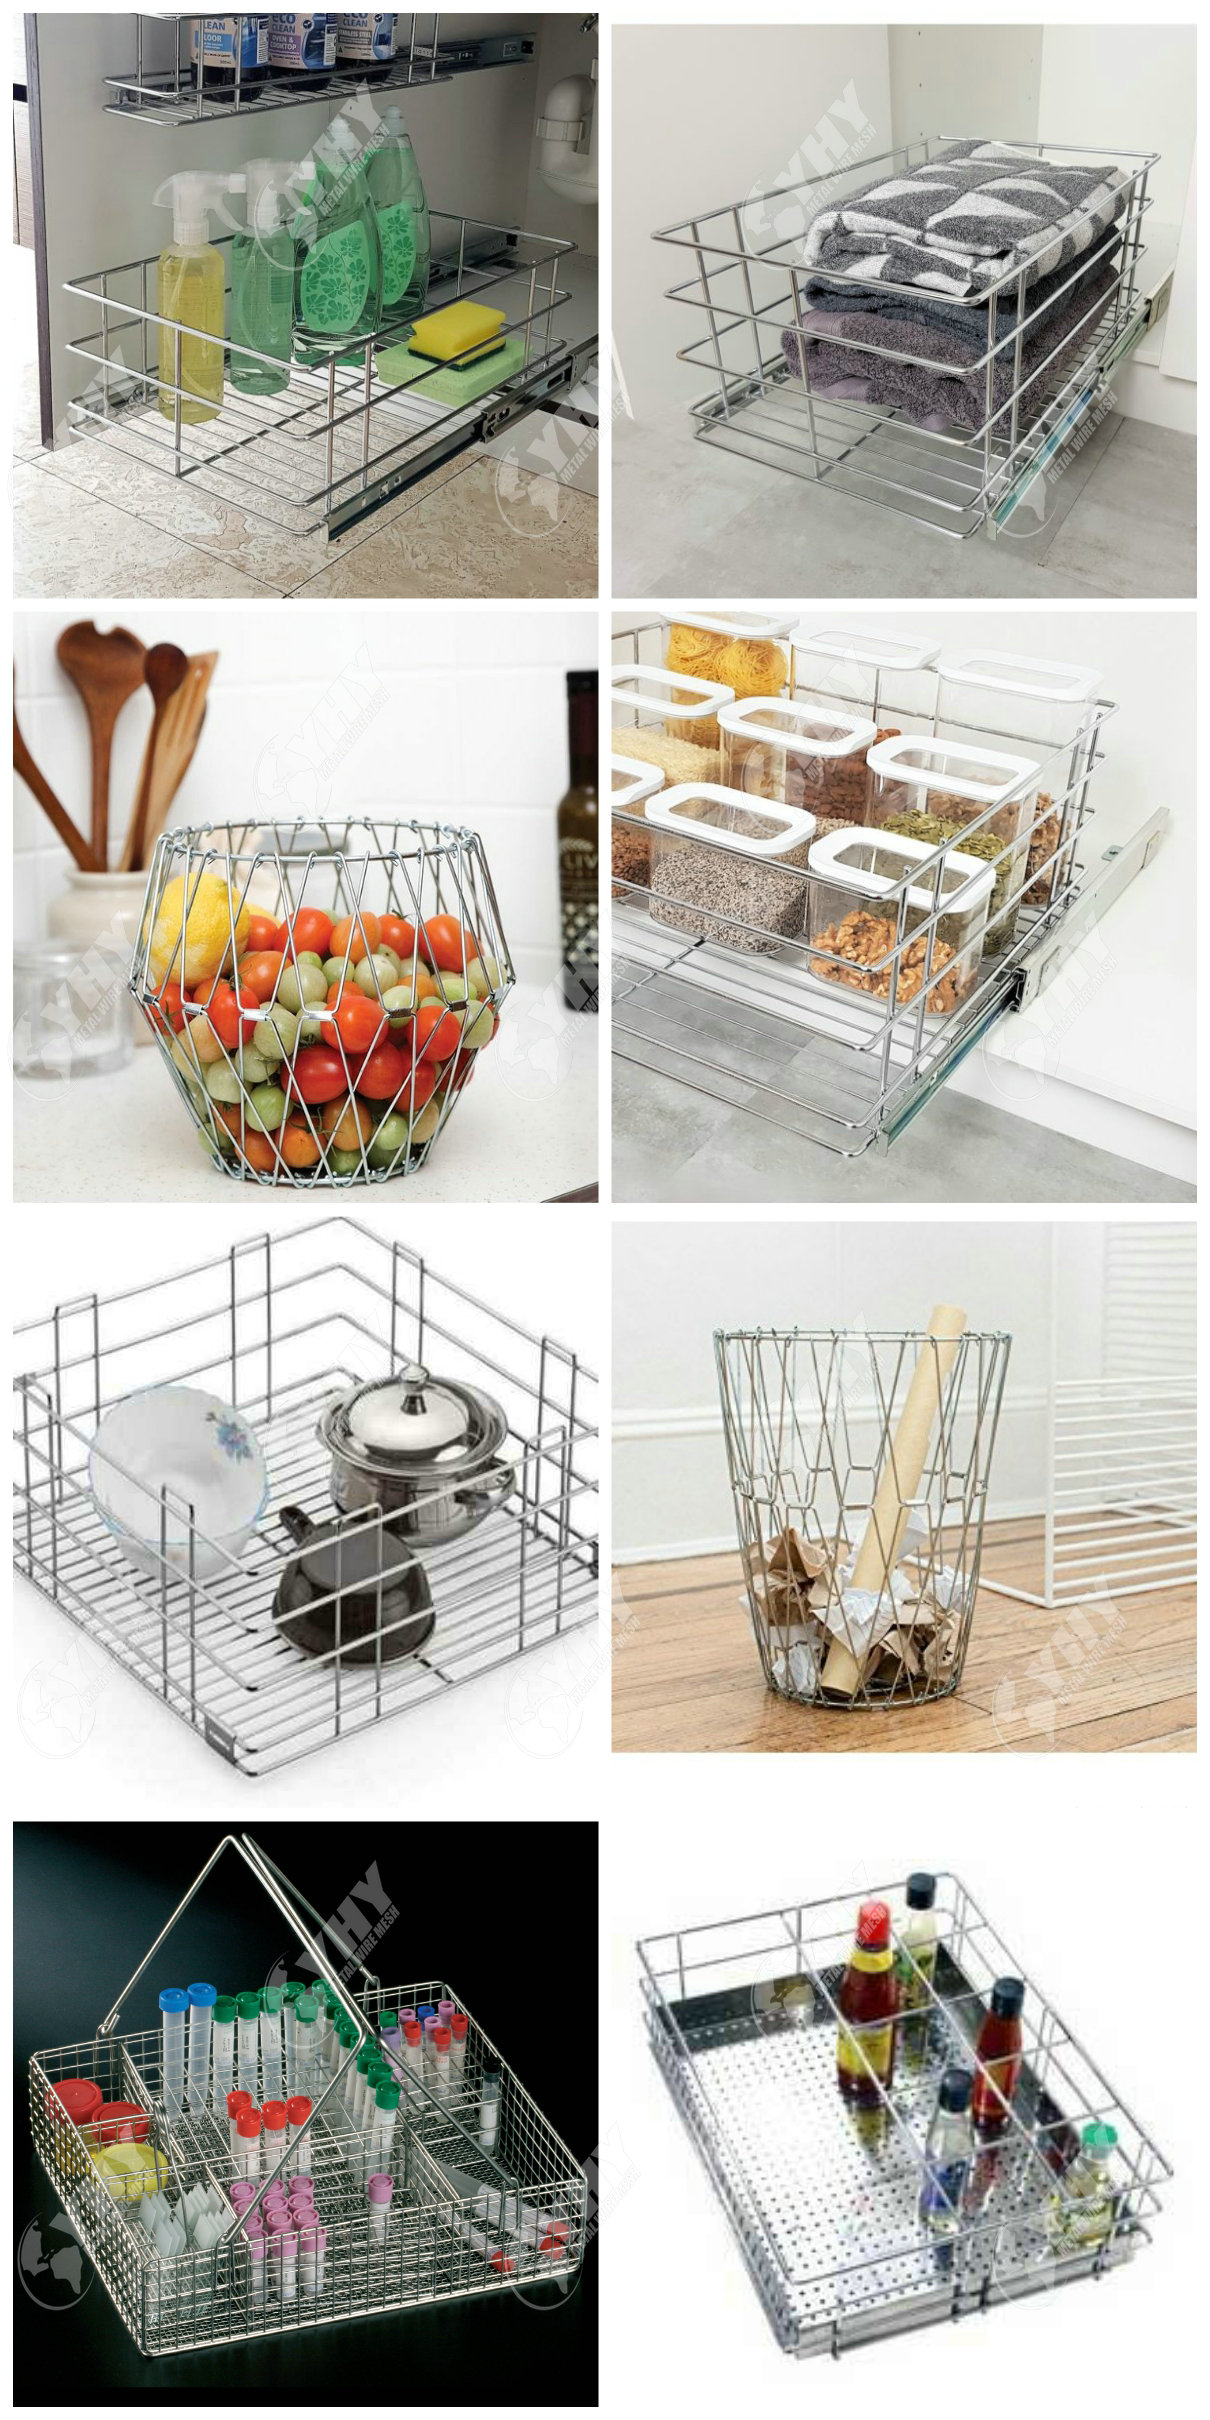 Factory direct sales of Stainless steel 304 metal mesh baskets for a wide range of uses